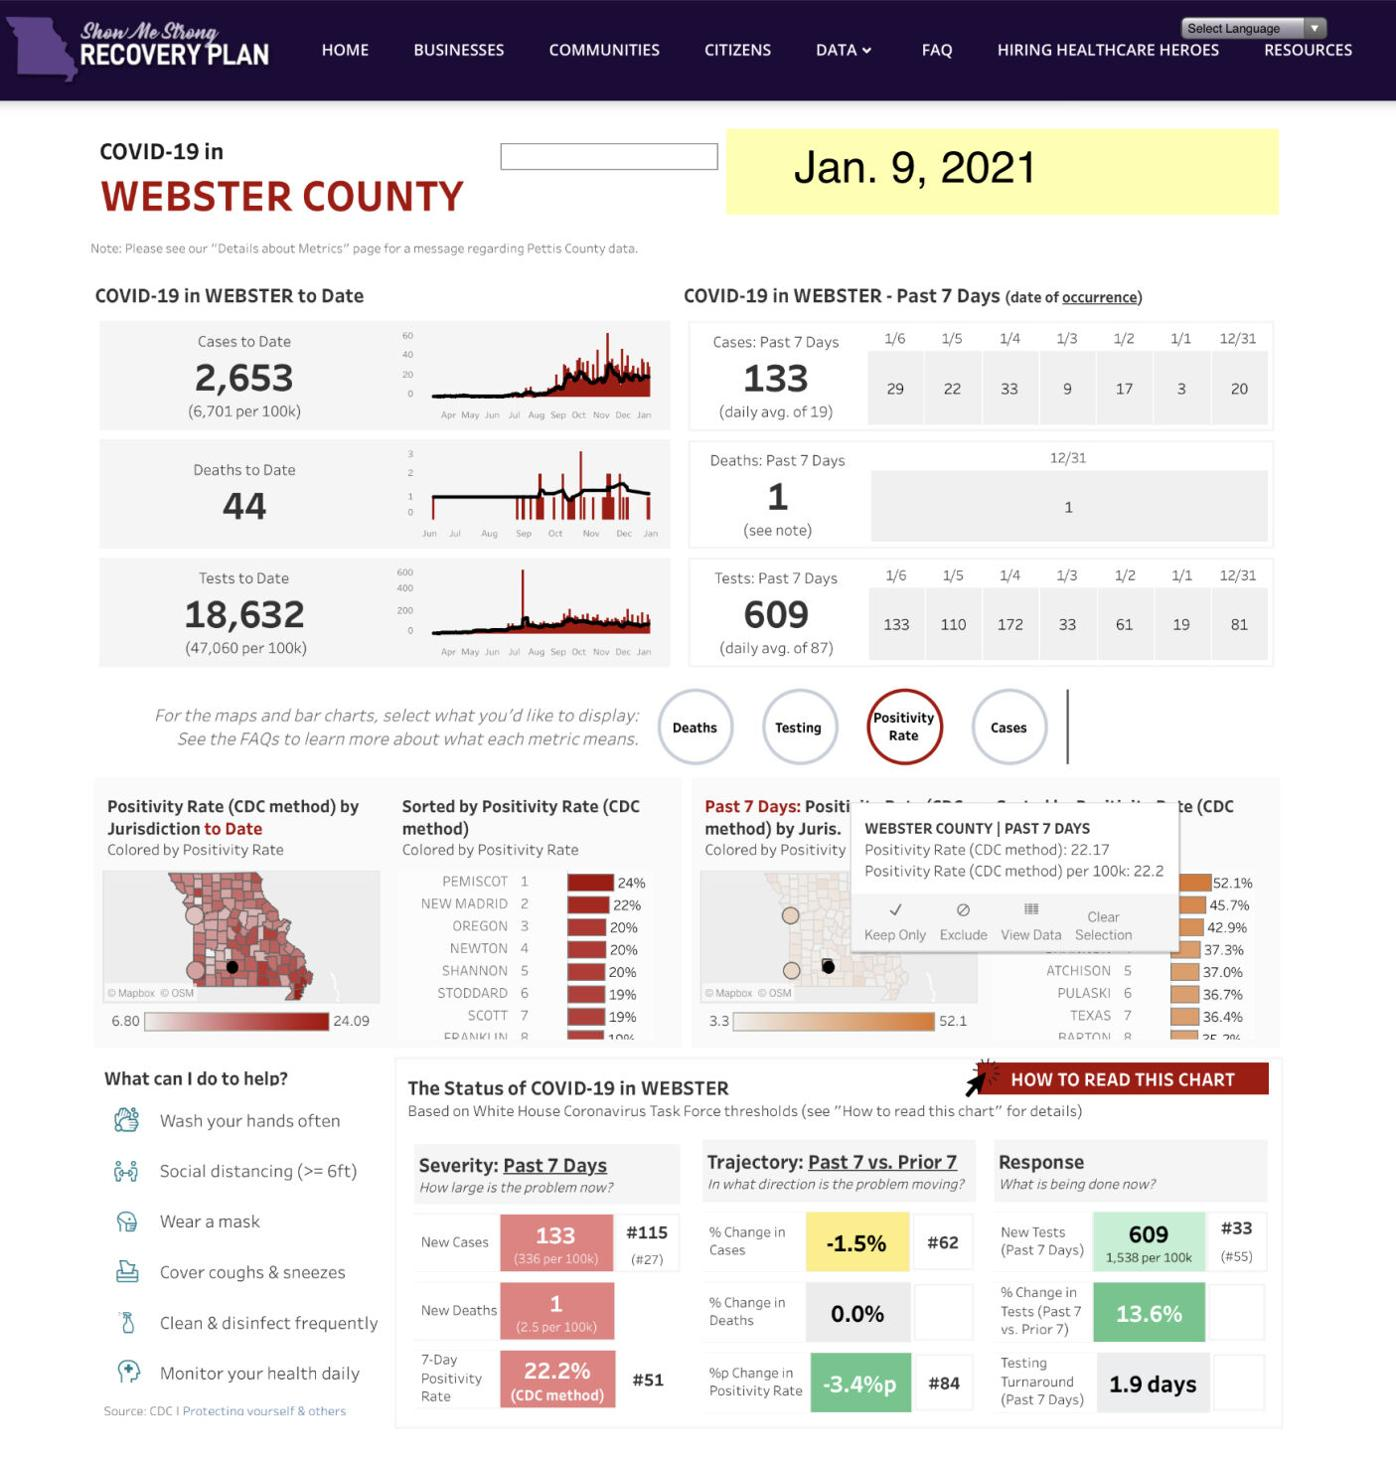 - COVID-19 cases Jan. 9 Web. Co. Mo. State